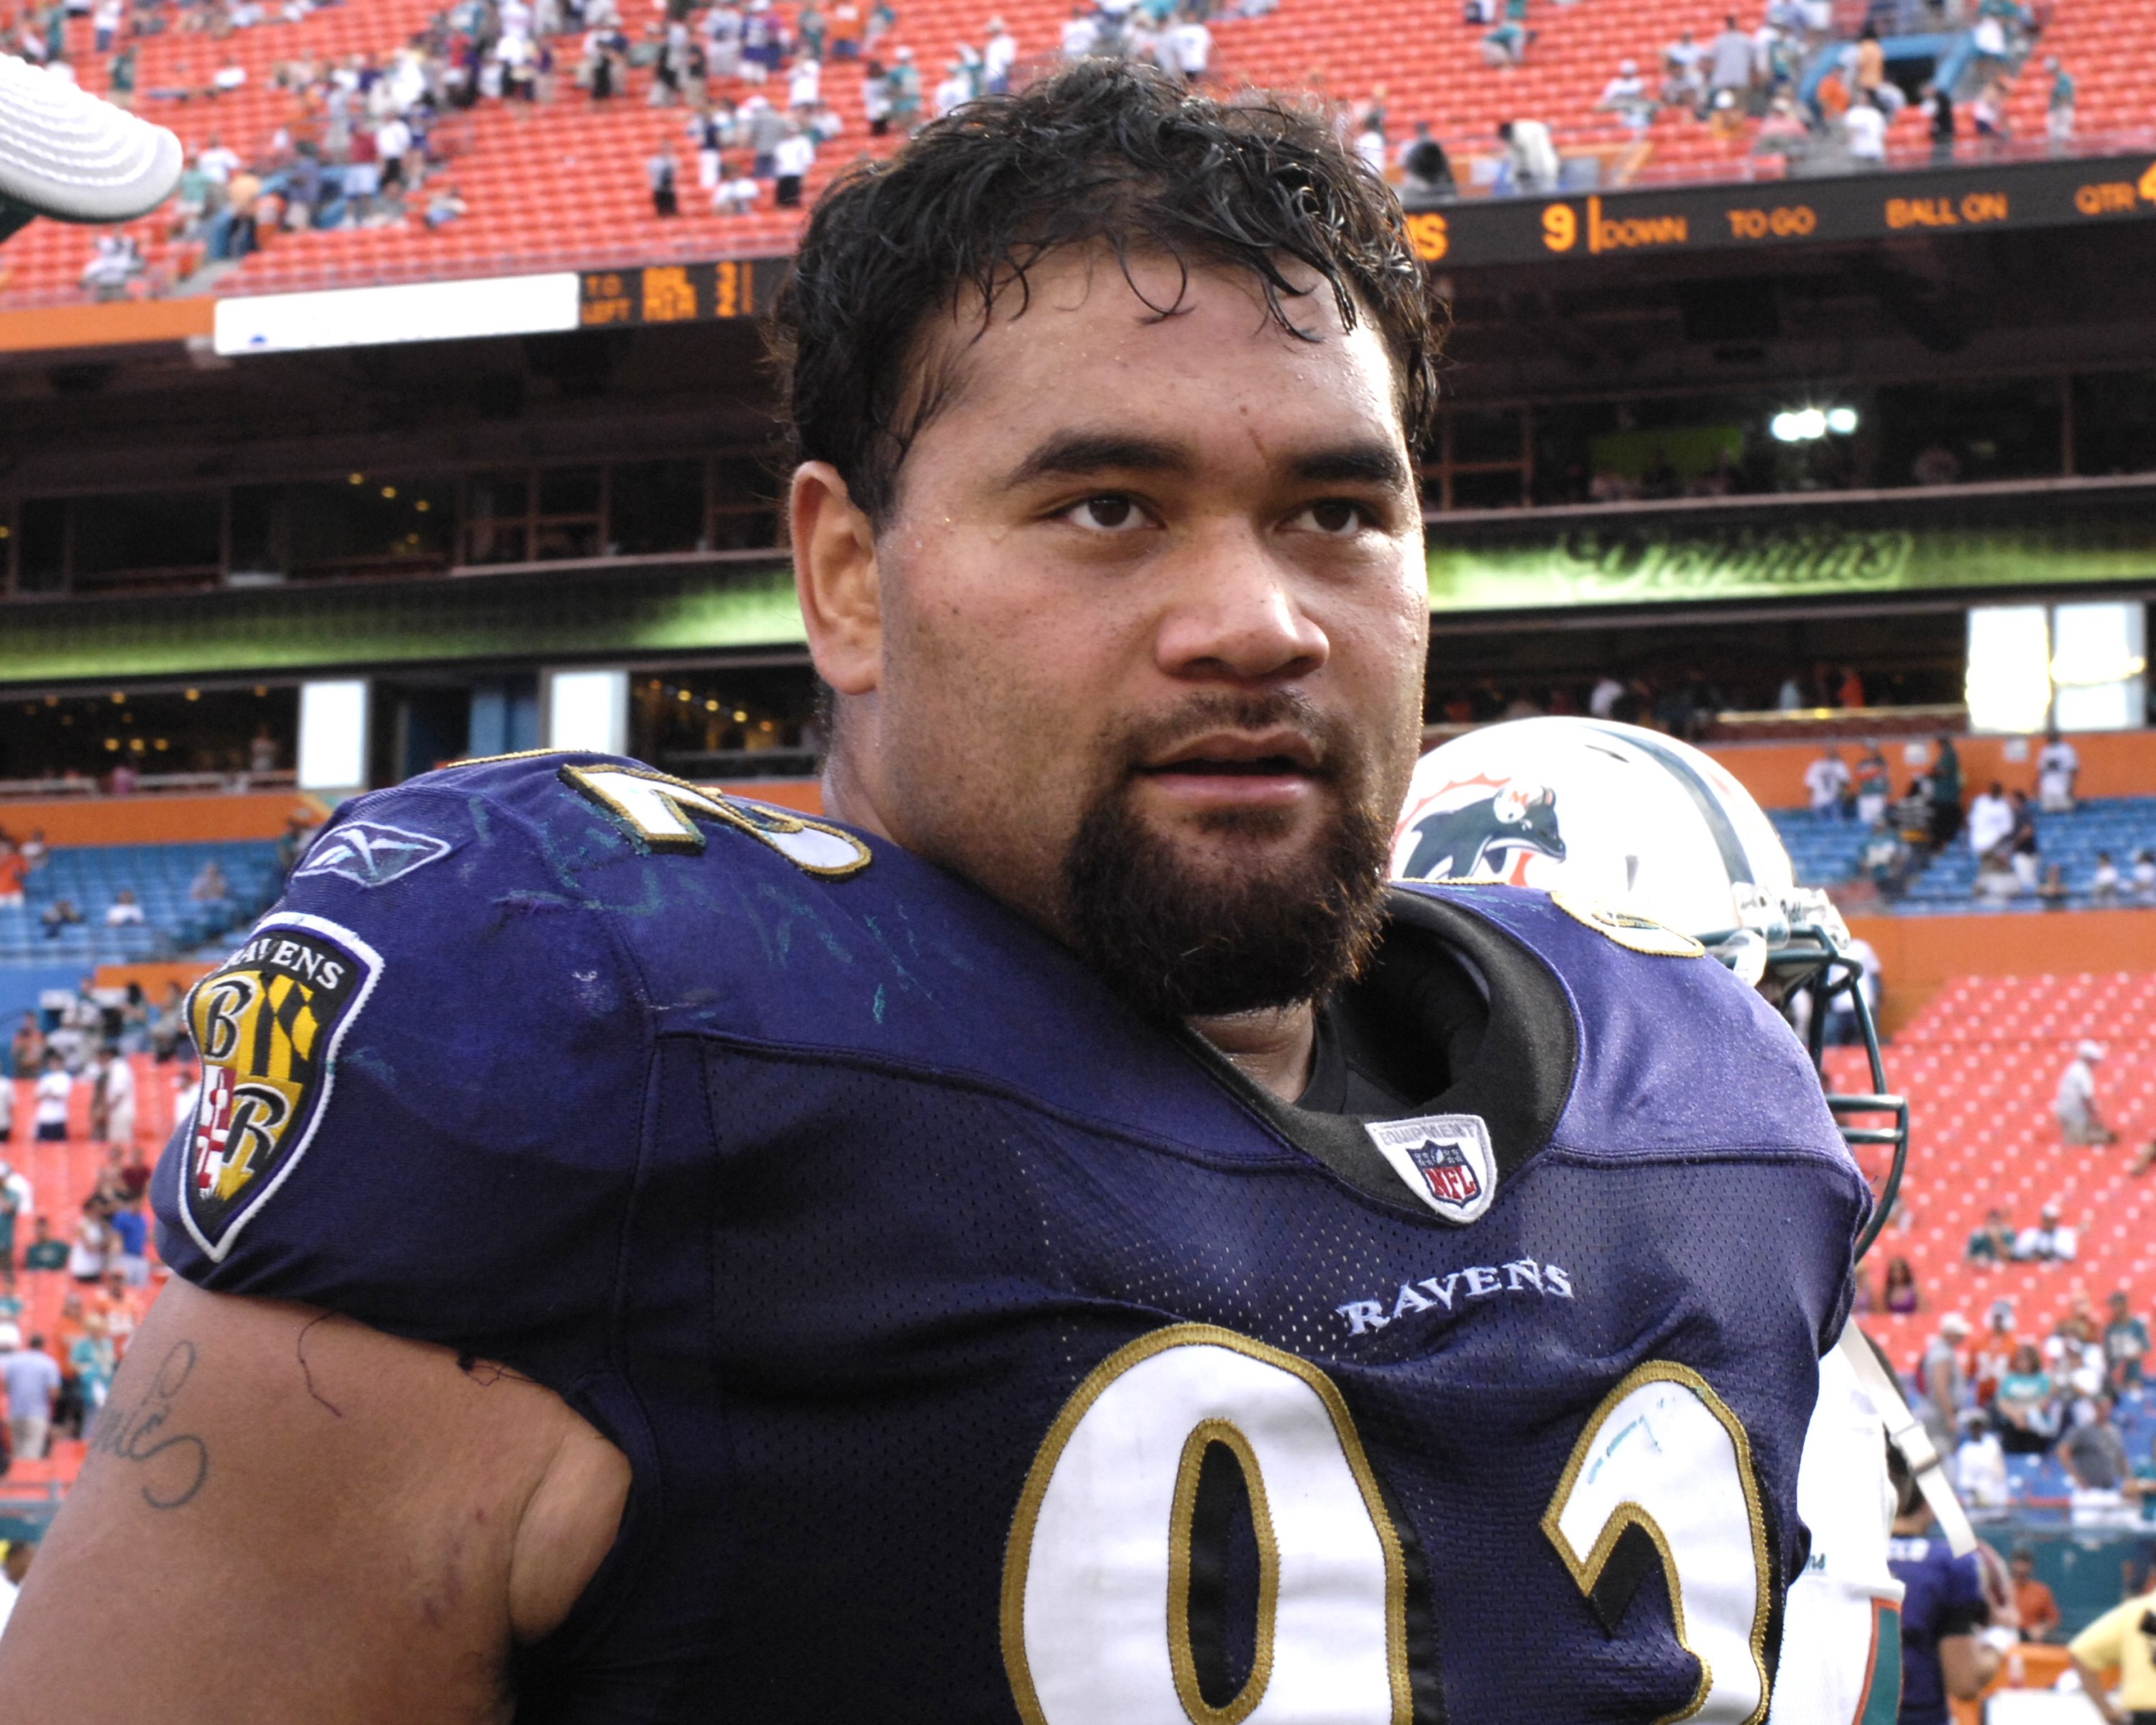 MIAMI, FL - JANUARY 4:  Nose tackle Haloti Ngata #92 of the Baltimore Ravens leaves the field after play against the Miami Dolphins in an NFL Wildcard Playoff Game at Dolphins Stadium on January 4, 2009 in Miami, Florida.  (Photo by Al Messerschmidt/Getty